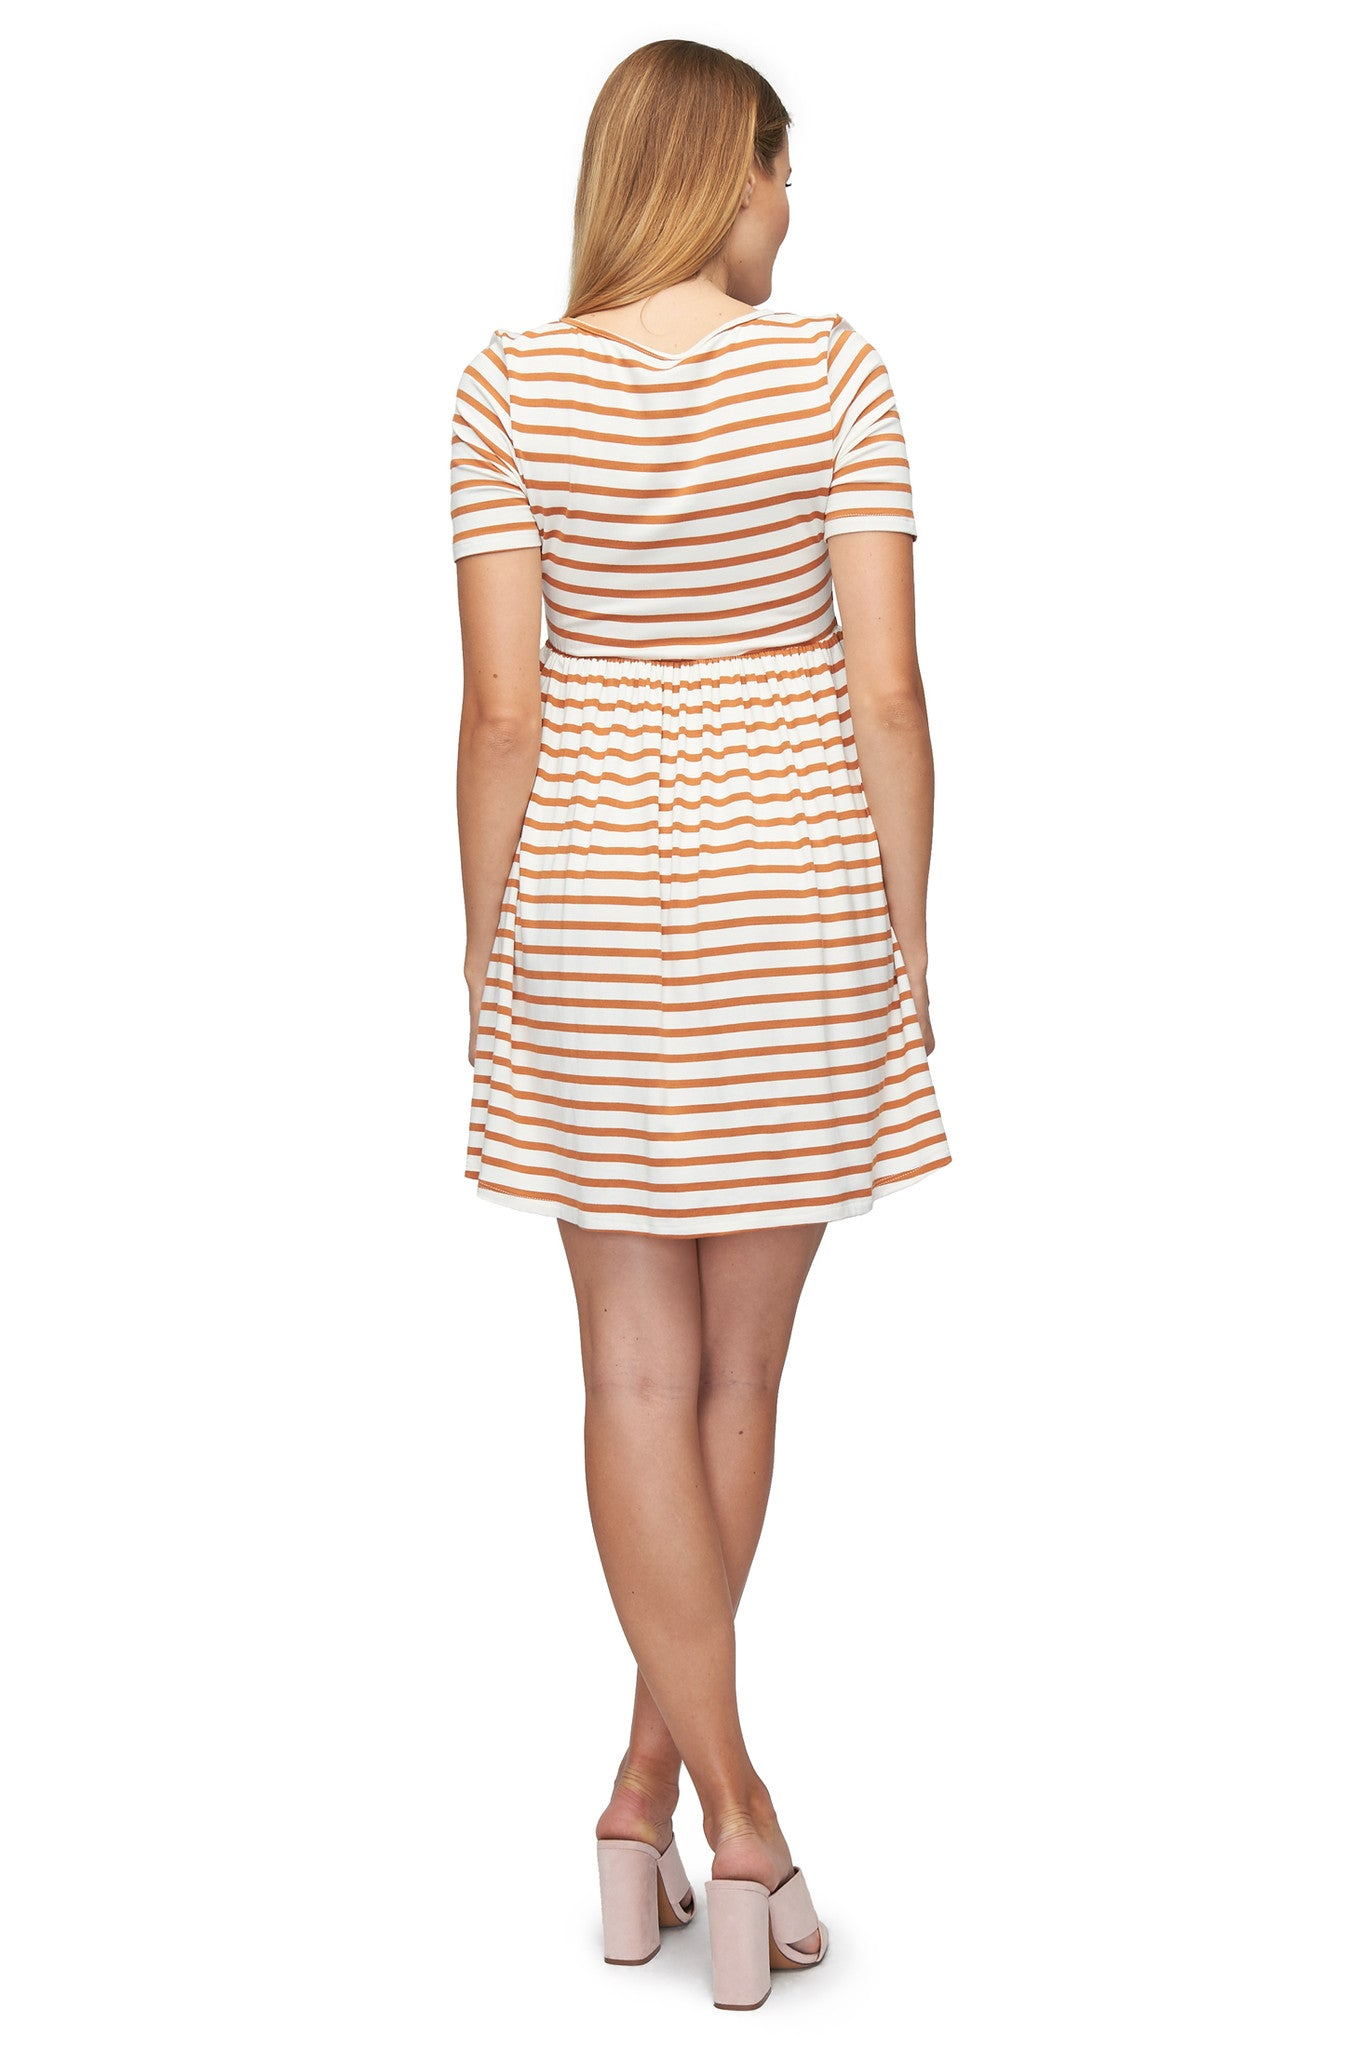 Marcelle Dress Print - Flan Stripe